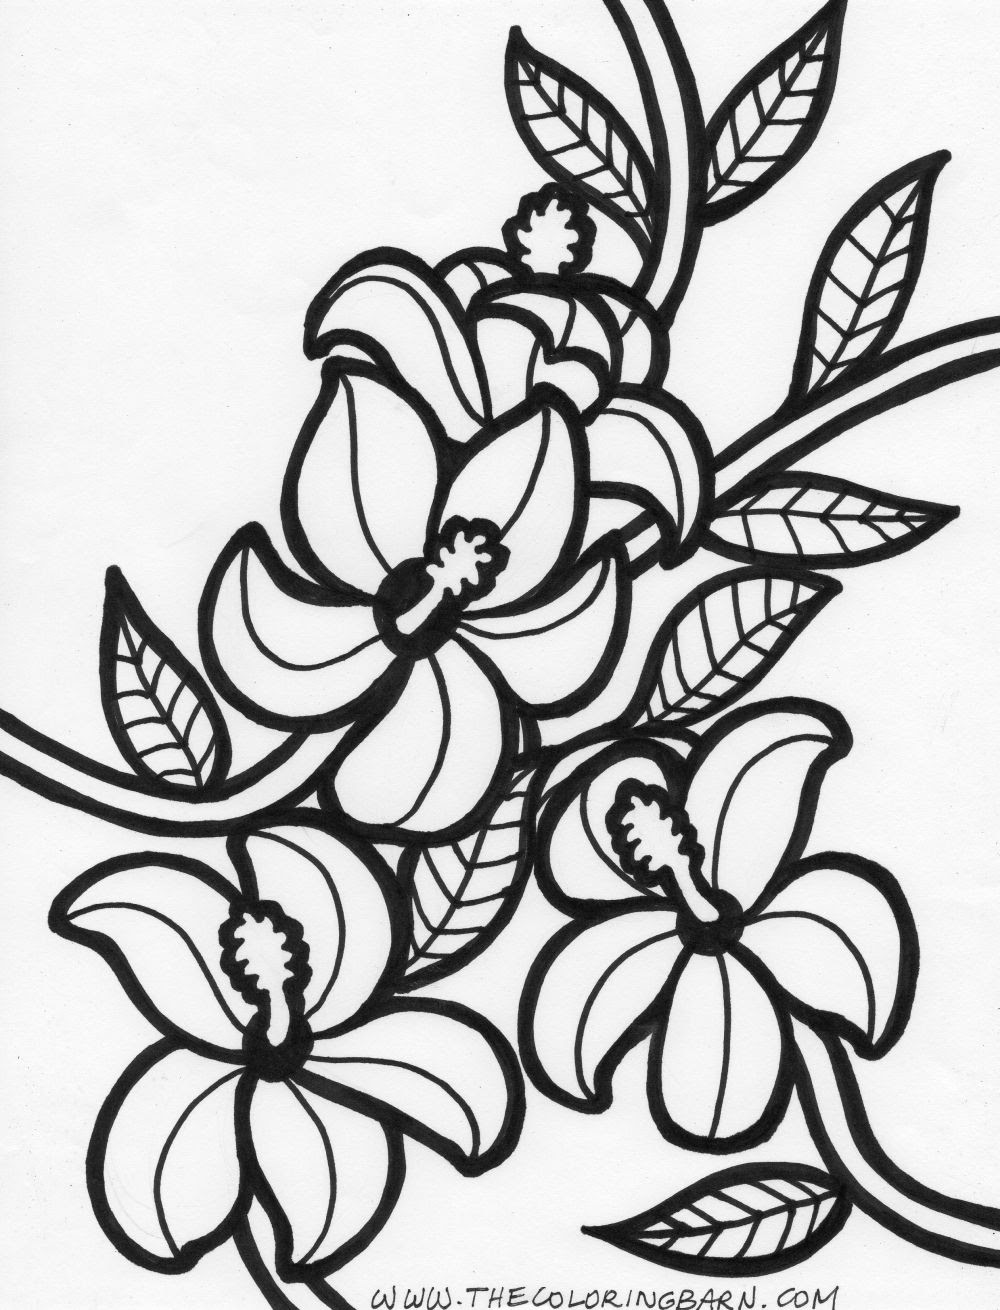 The Best Free Hawaiian Coloring Page Images Download From 374 Free